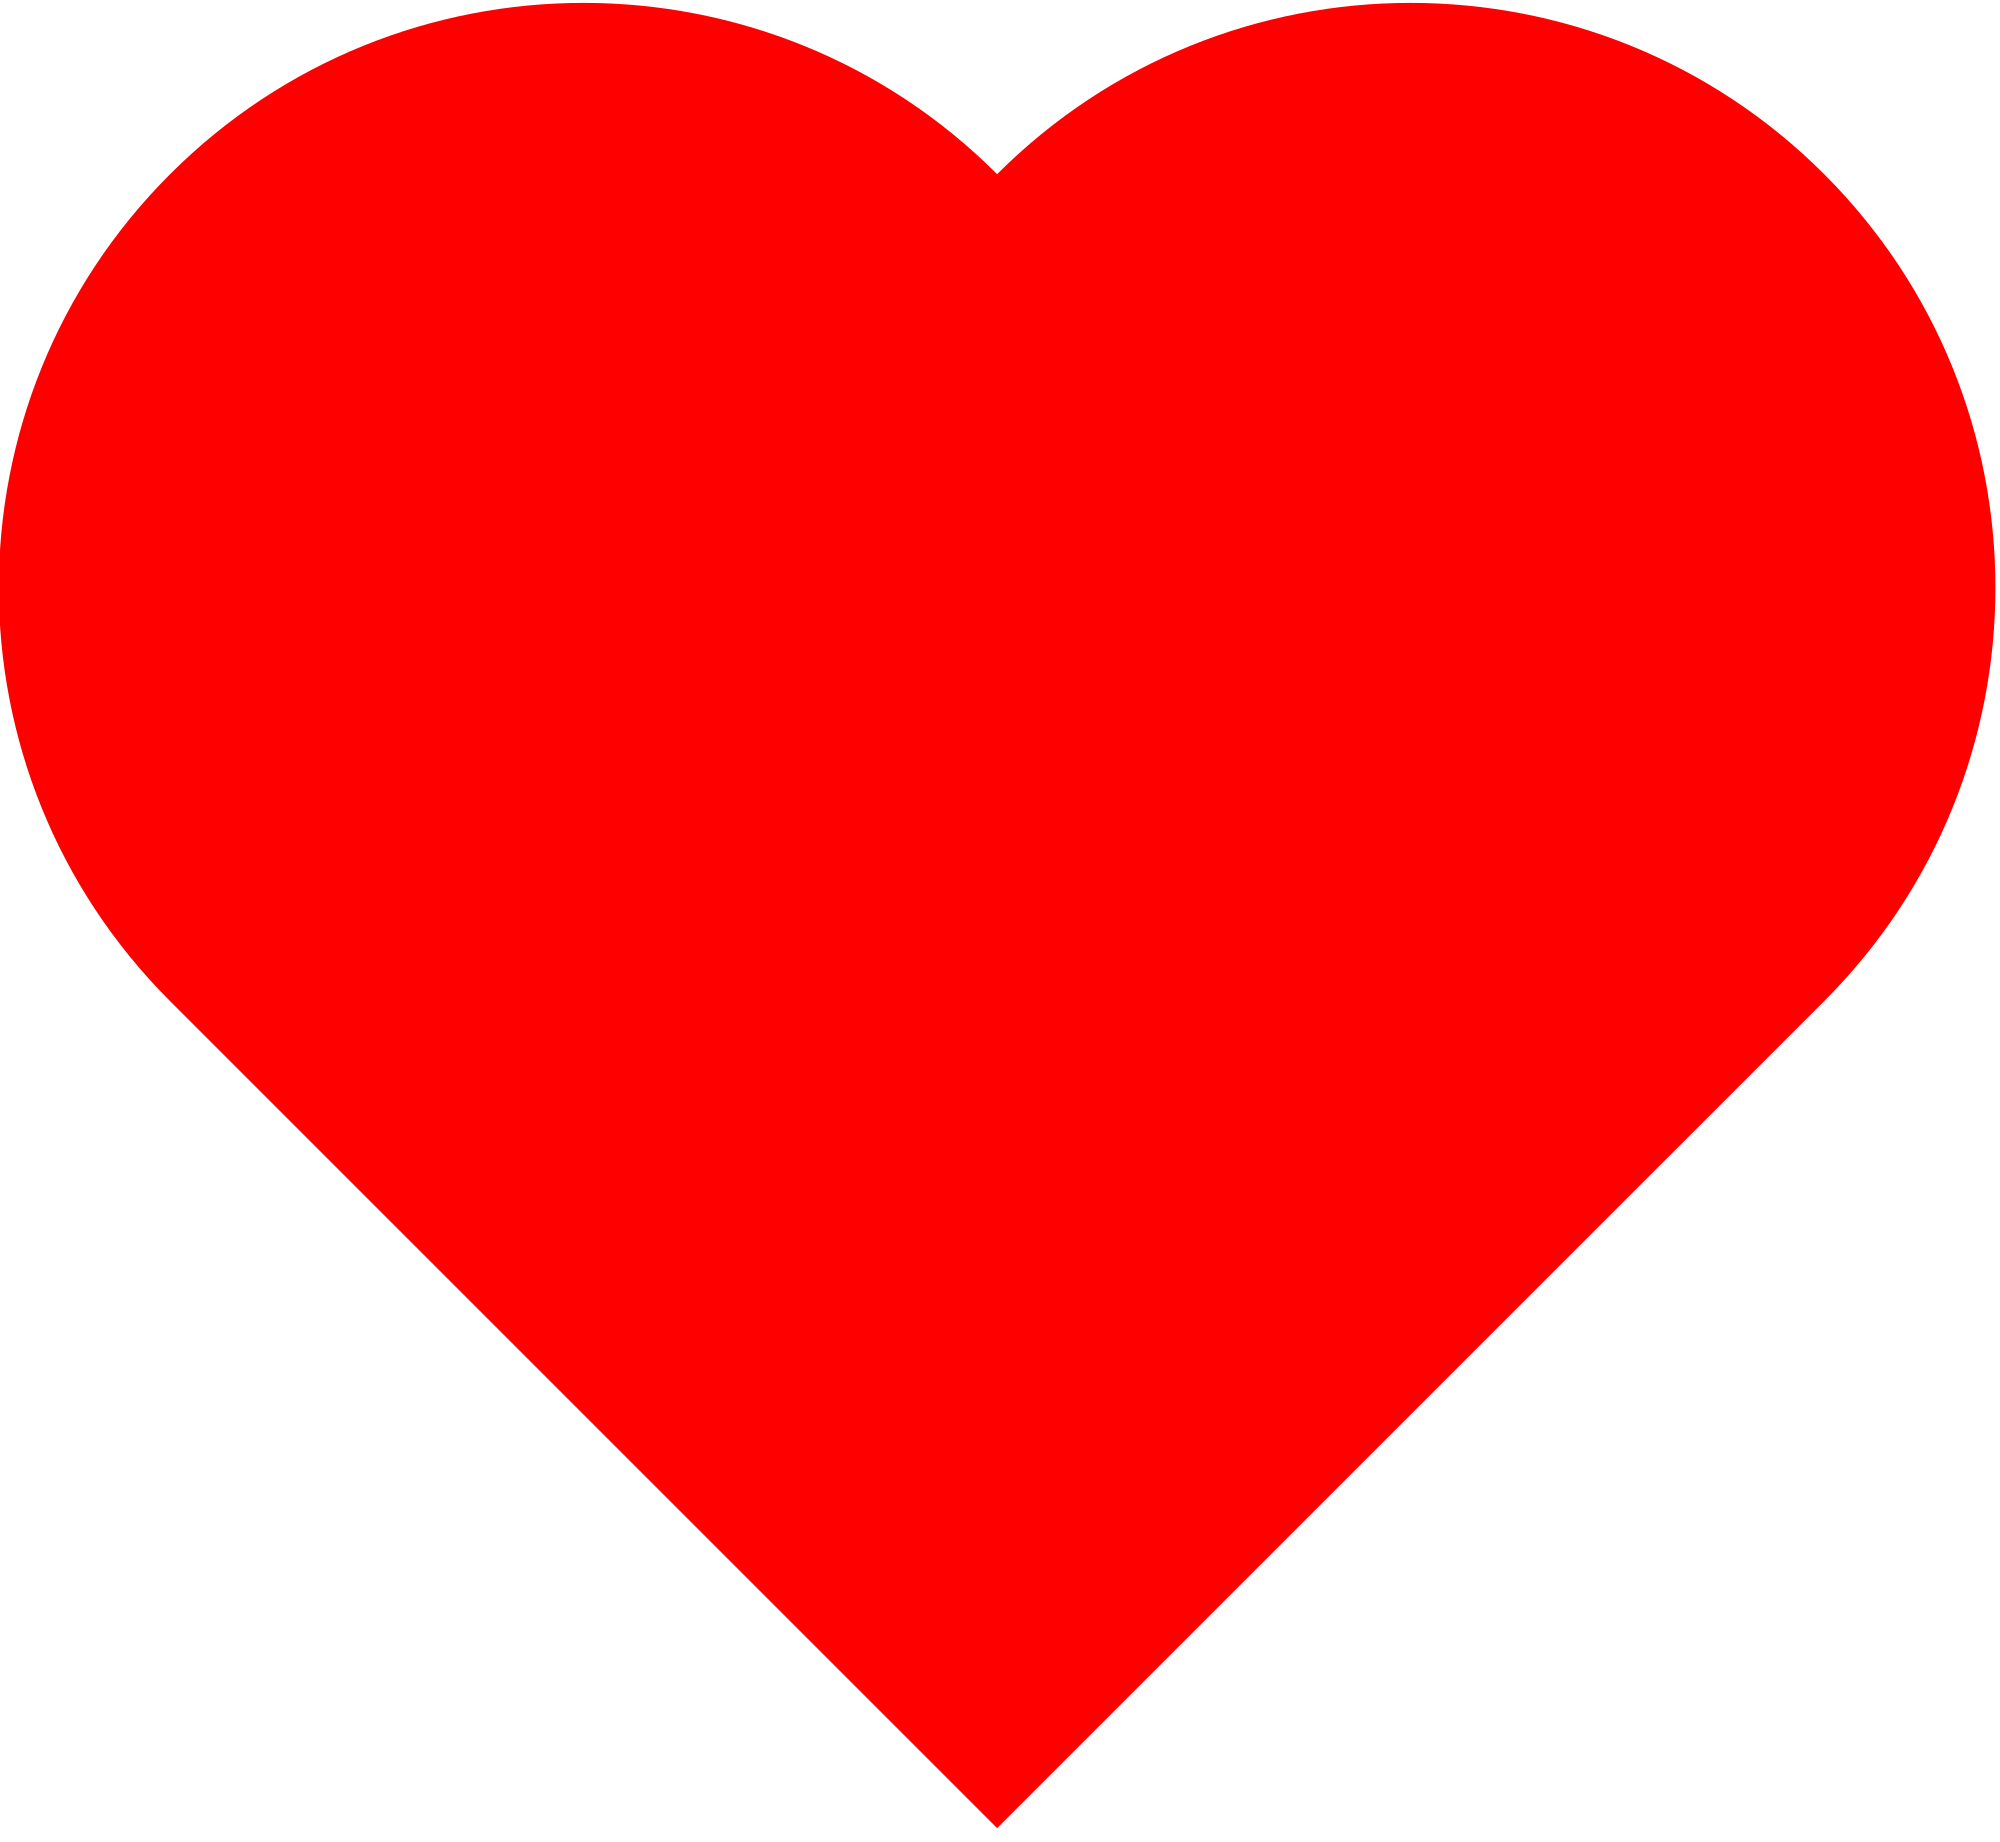 And svg heart. File a perfect wikimedia